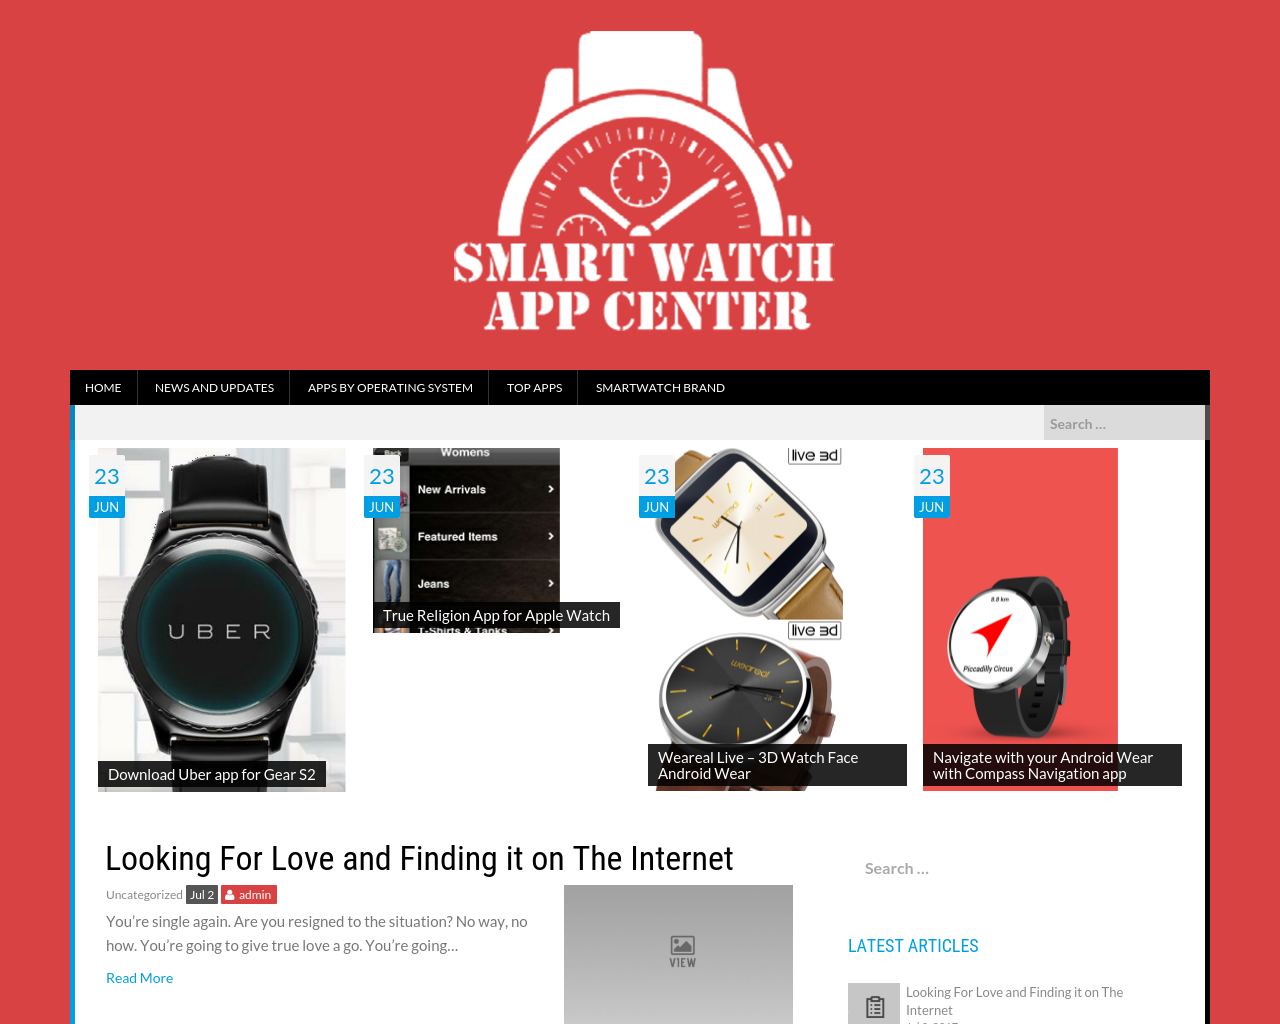 SmartWatch-App-Center-Advertising-Reviews-Pricing